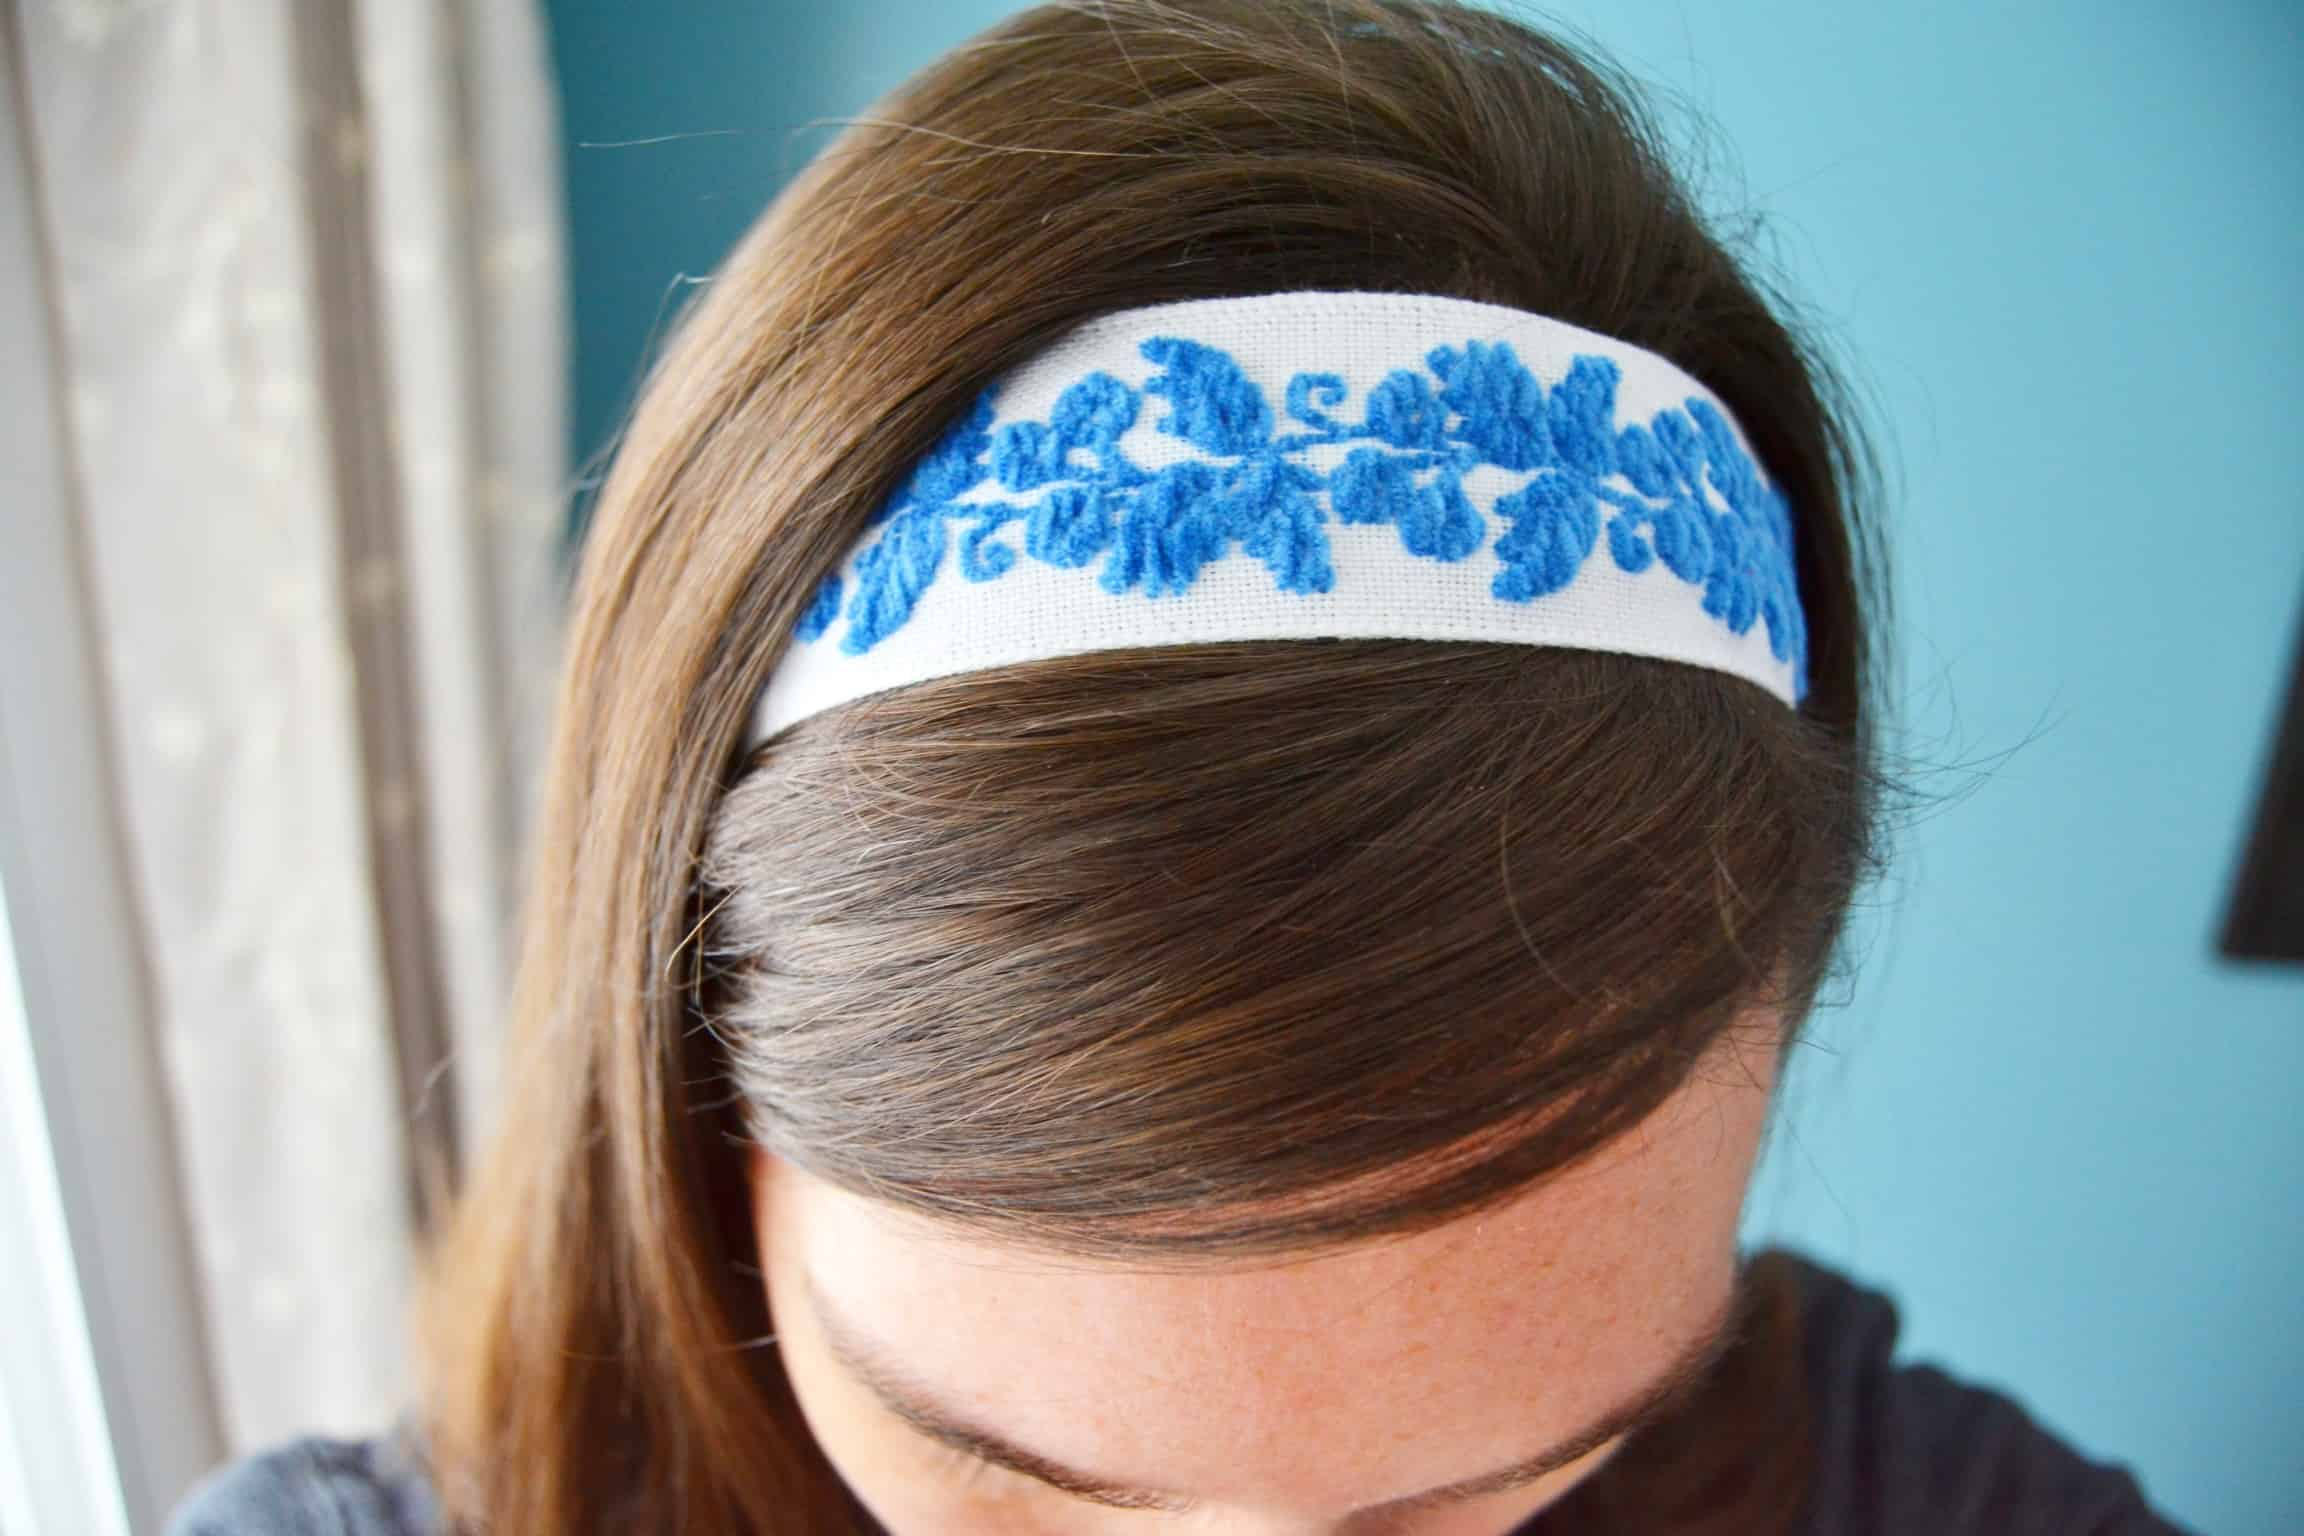 DIY Headbands No Sew Tutorial